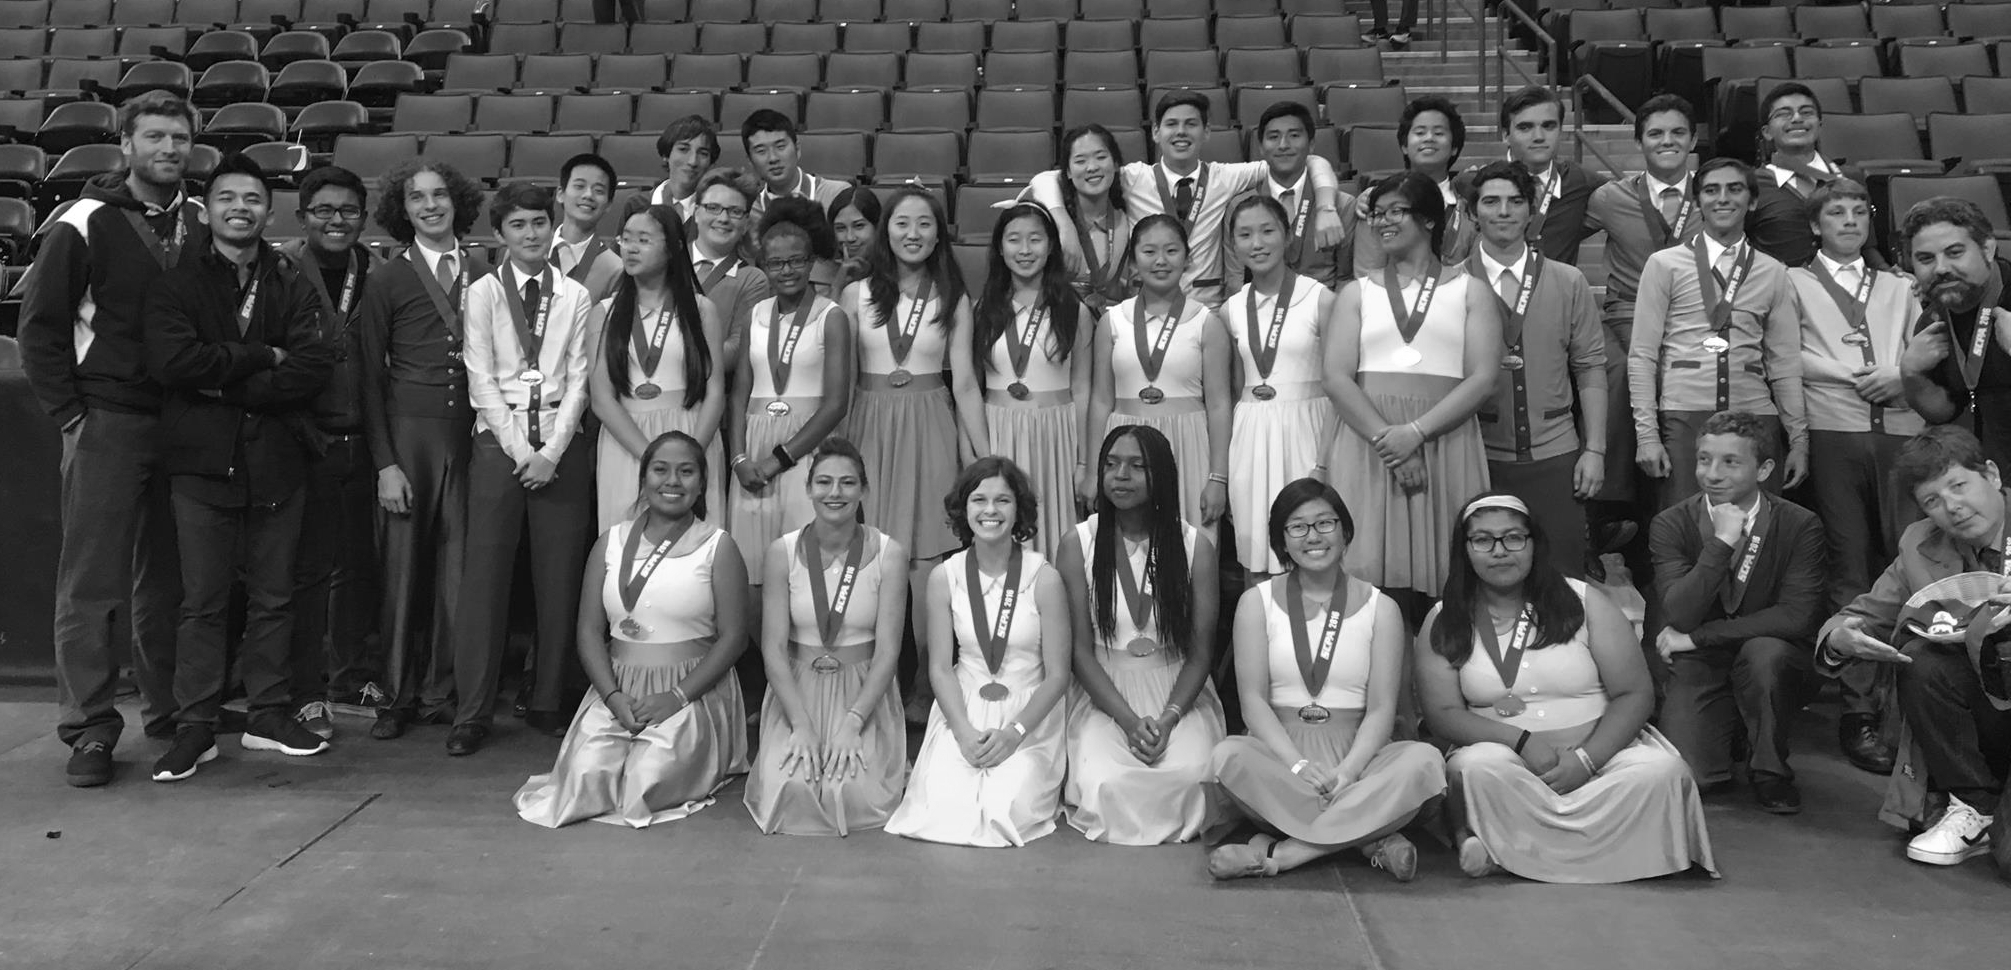 Palisades Charter     Sisyphus In The Underworld (2017) –SCPA Scholastic A Finalist  Hysteria: 1951!! (2016) –SCPA Scholastic A Silver Medalist /WGI Western Championship Scholastic A Bronze Medalist    Mira Costa     To Build A Fire (2016) –SCPA Scholastic A     Gahr  (guest clinician - Front Ensemble)      The Voyage (2016) – SCPA Scholastic A / ADLA Scholastic Open     Ross Middle School  (guest clinician - Front Ensemble)      Prototype (2016) – ADLA Junior Silver Medalist     Santa Ana     To See The Forest Through The Trees (2016) – ADLA Scholastic A  iHuman (2015) – ADLA Scholastic A Finalist     El Segundo     The Eye in the Pyramid (2015) – ADLA Scholastic A Finalist  Coma (2014) – ADLA Scholastic A  Puppet: Society's Control (2013) – ADLA Scholastic B     Chaminade     outKast (2014) – ADLA Scholastic B  Eruption (2013)  – ADLA Scholastic C     Beverly Hills     The Chase (2014) Drumline Robot (2013)      Palos Verdes     The Constant (2012) –ADLA Scholastic C Finalist  Rolling Blackout (2011) –DAC Division II Combined Sweepstakes